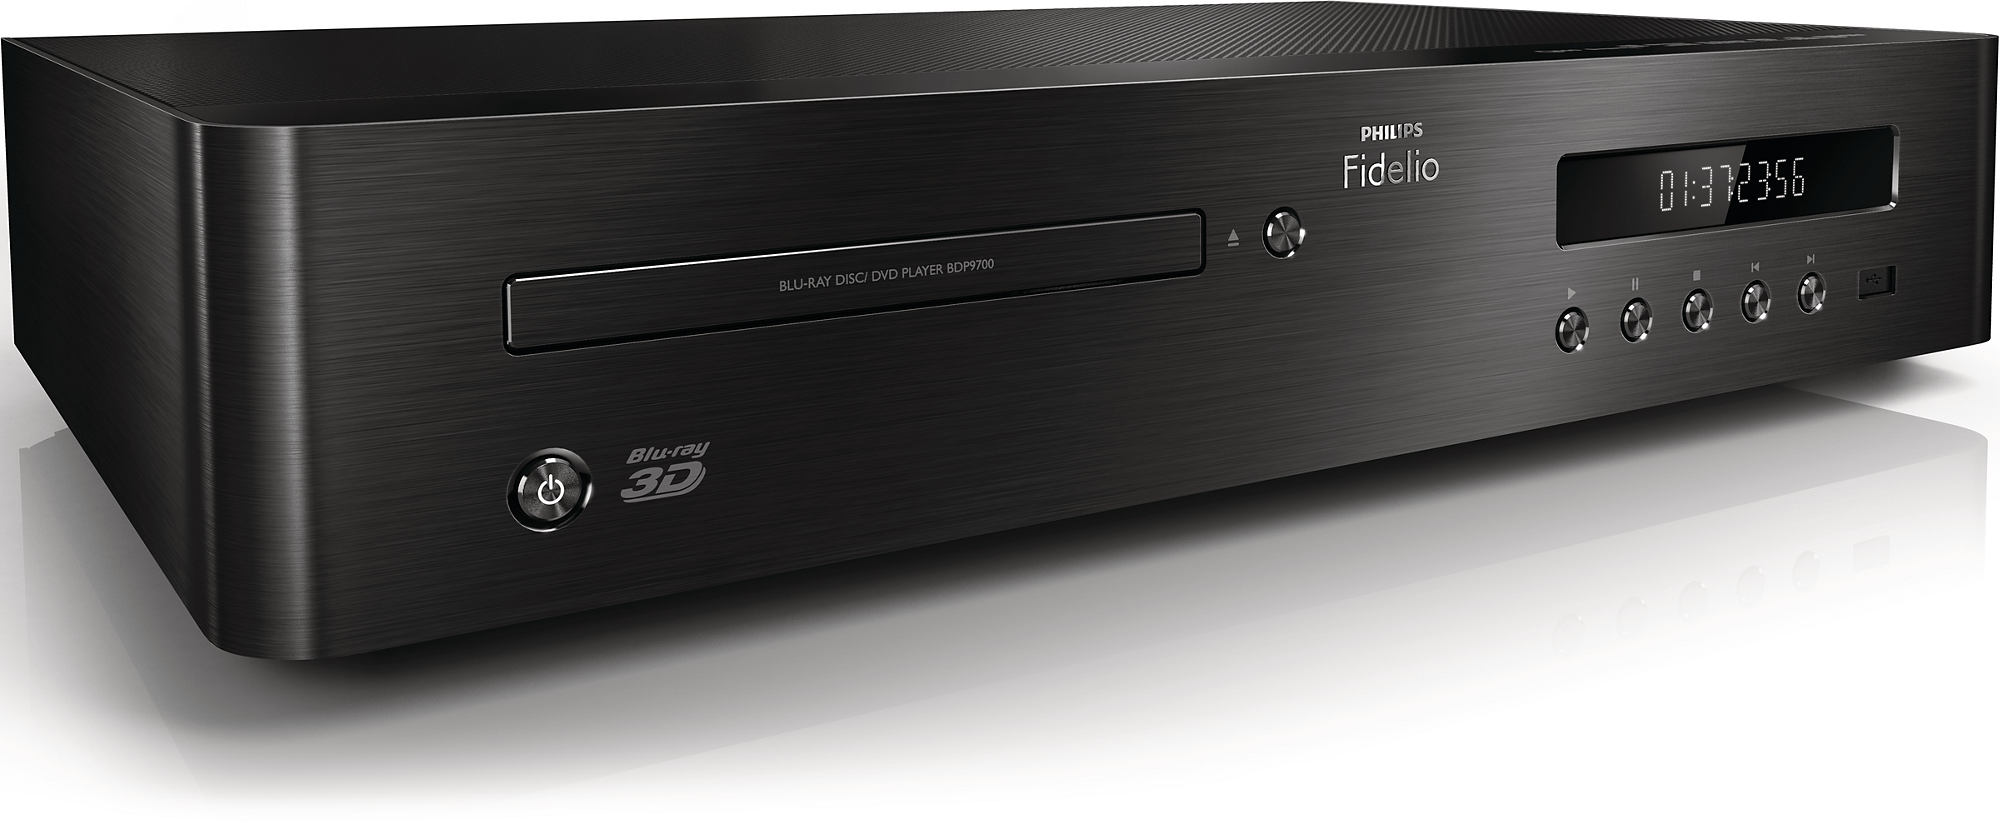 Player Blu-ray Philips BDP9700/12, Qdeo, Convertoare DAC TI Burr-Brown, Redare 3D